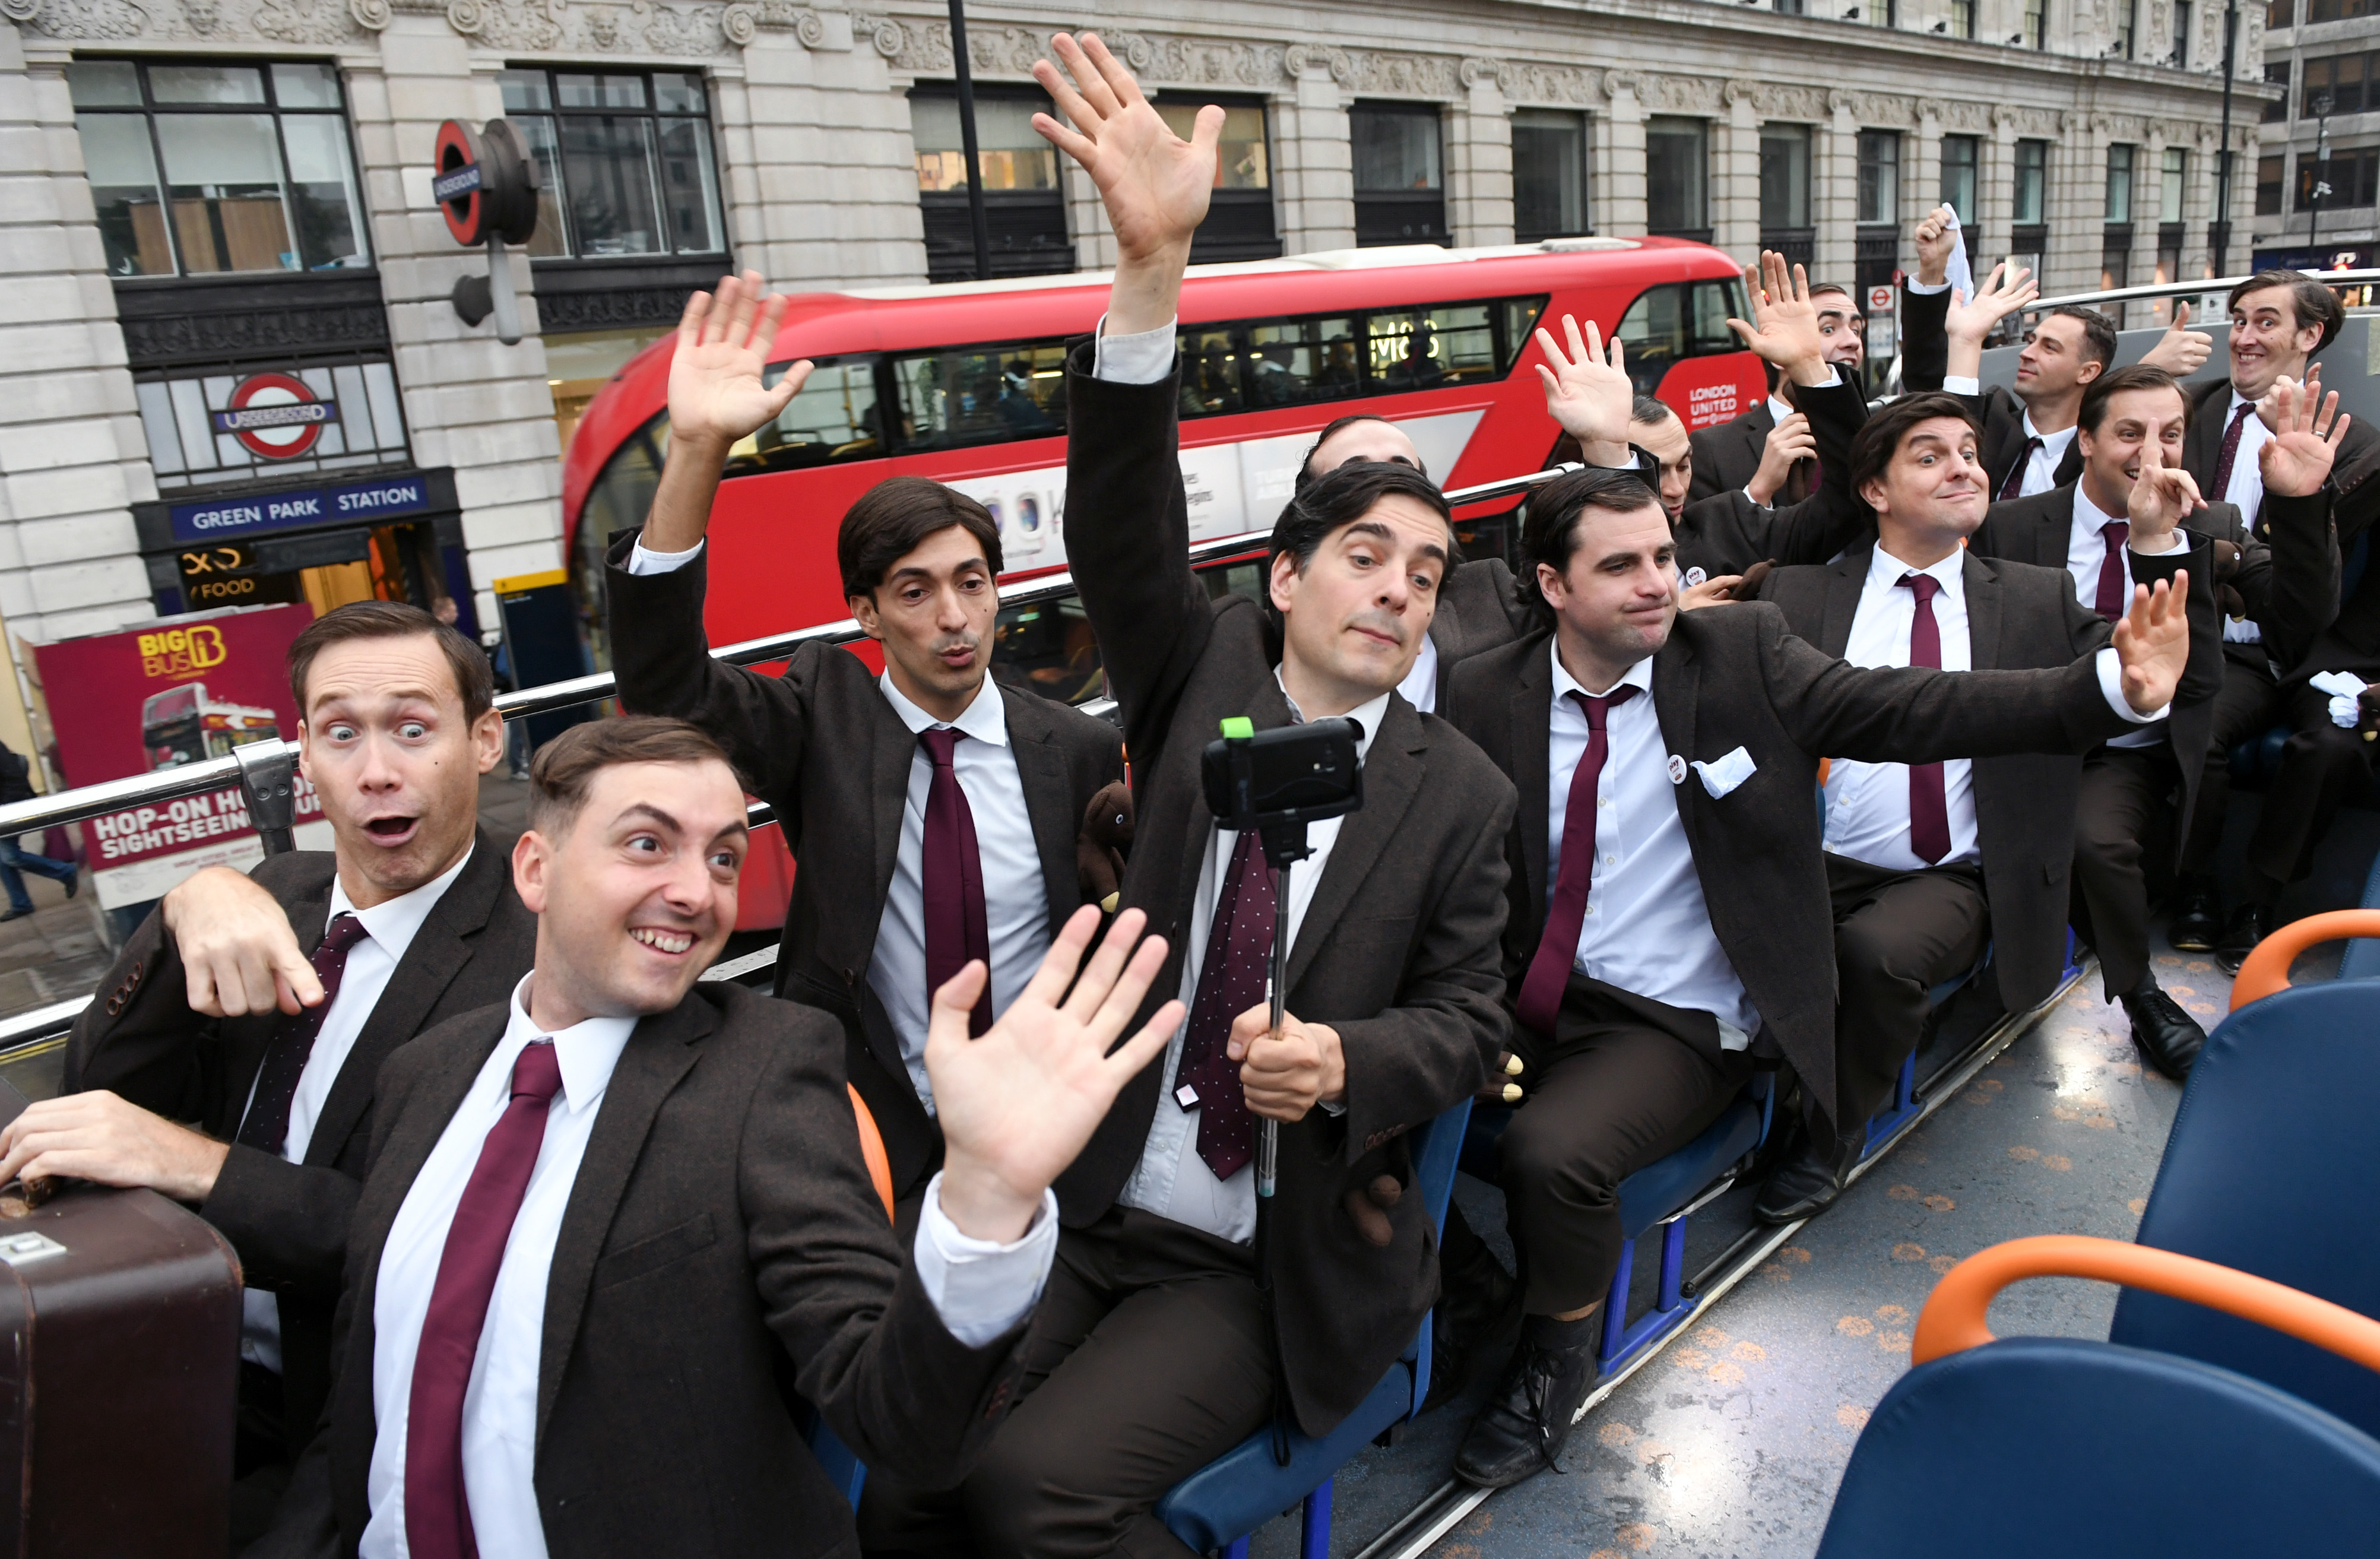 A group of men dressed as Mr Bean sit on the top deck of a bus touring London in front of a London Bus